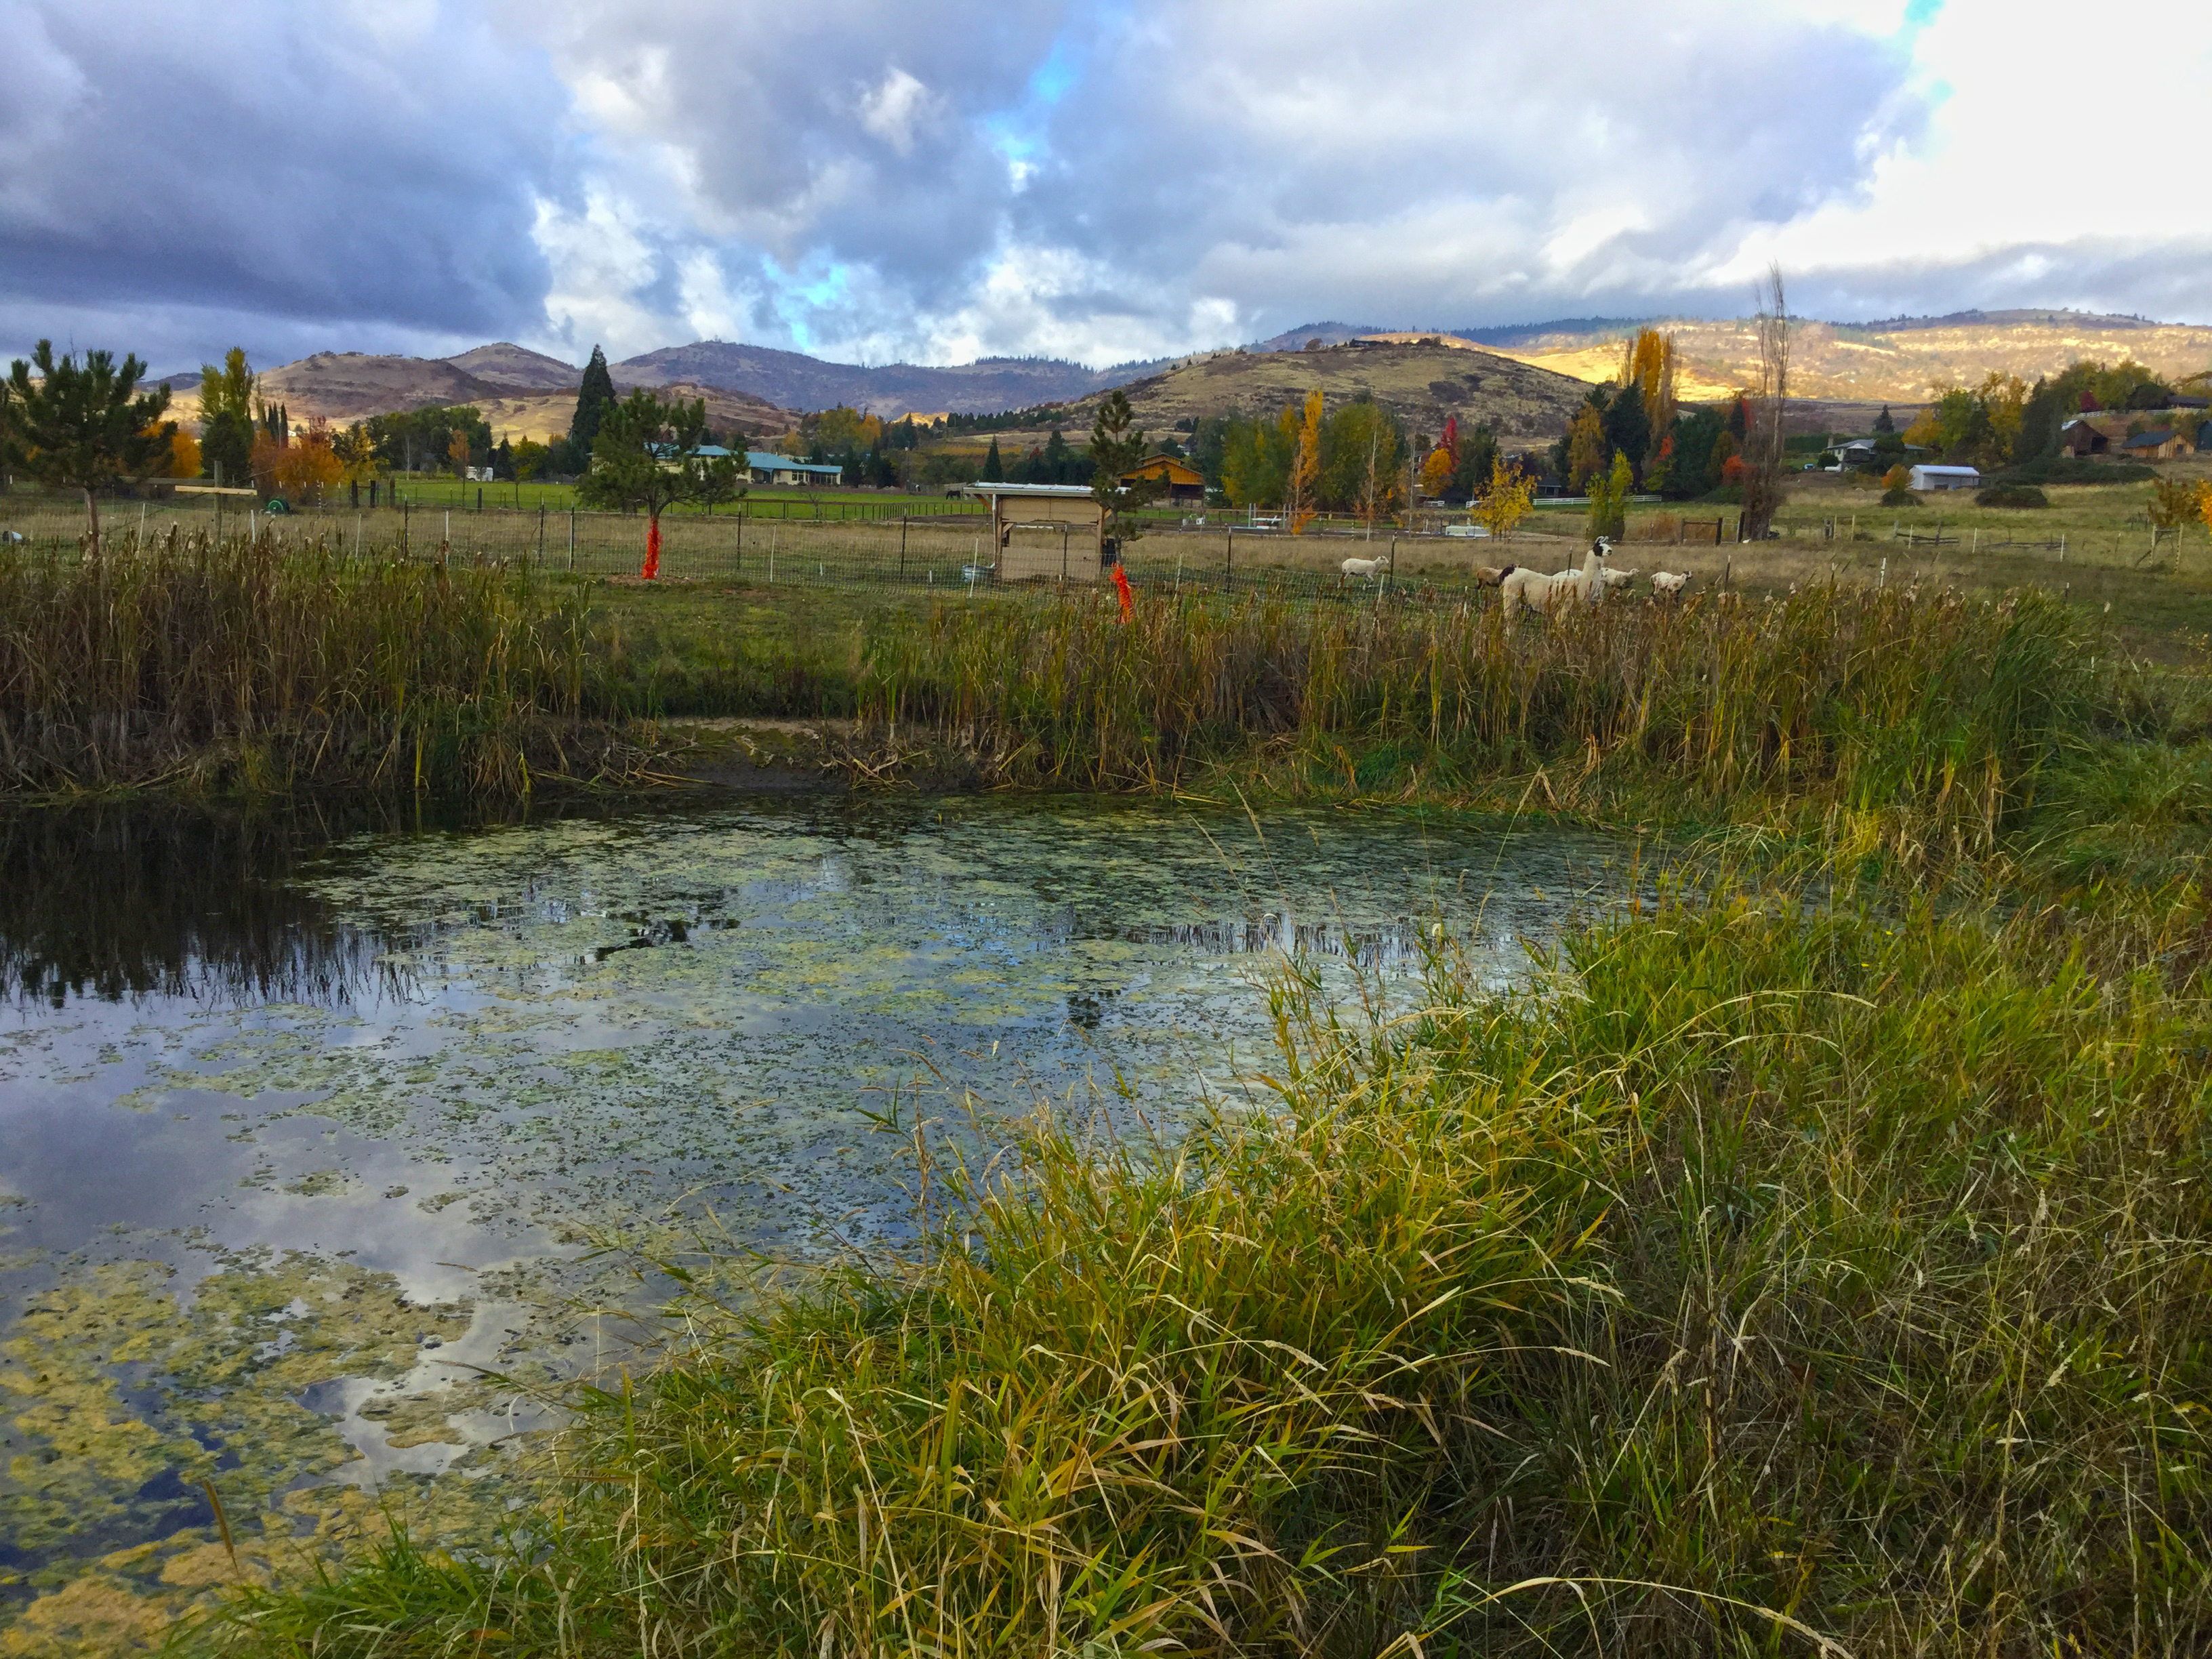 This pond located near animal pastures shows an excess of algae growth.